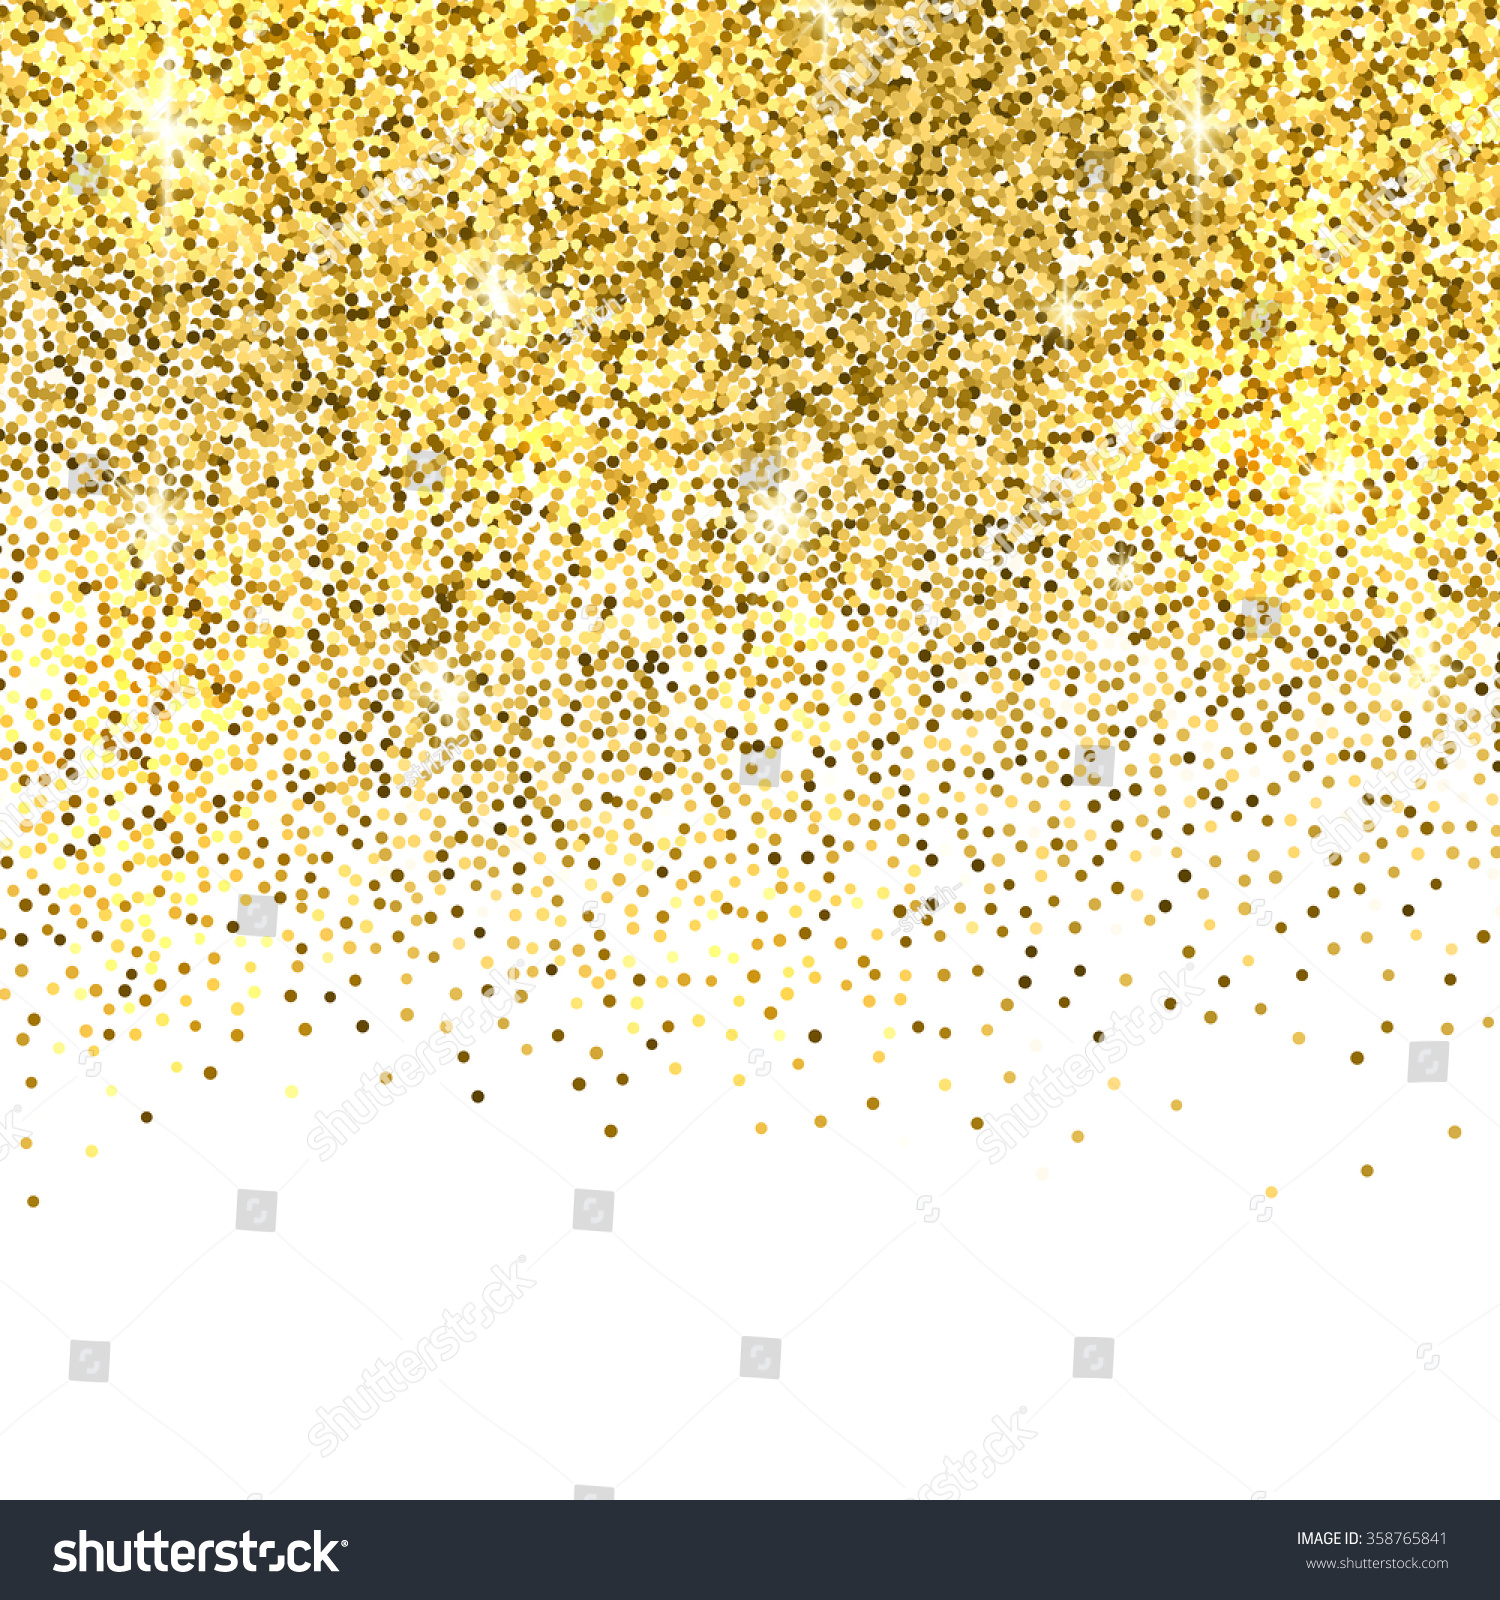 White And Gold Bedroom With Gray Bedding: Gold Sparkles On White Background Gold Stock Vector